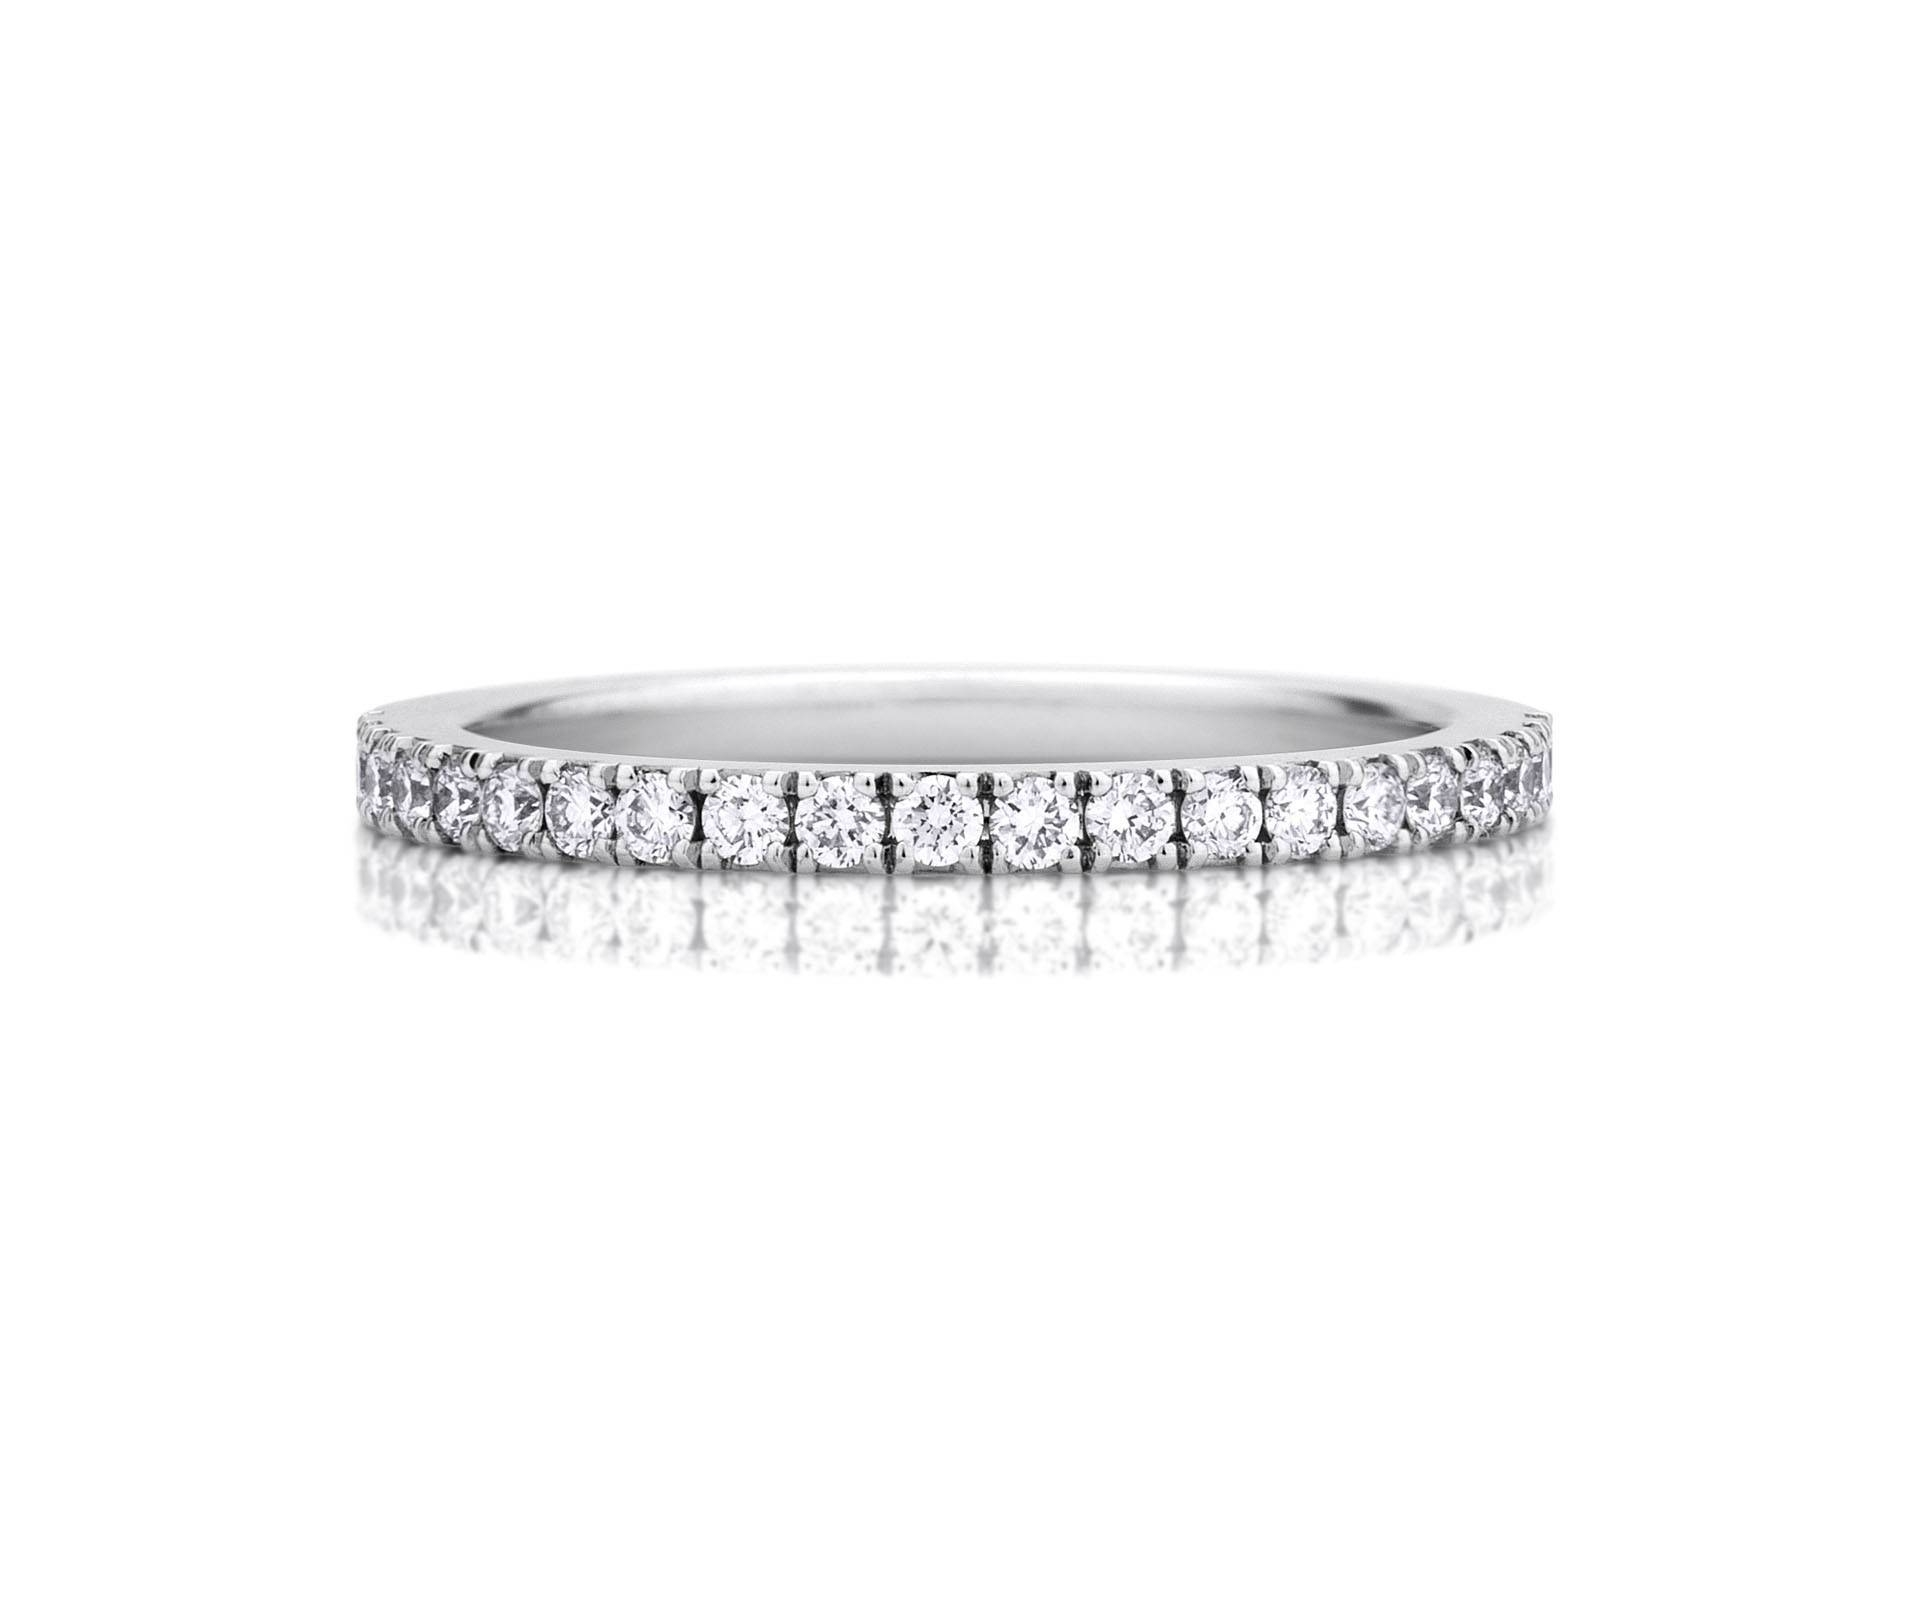 Diamond Wedding Rings & Bands | De Beers With Wedding Rings Bands With Diamonds (View 11 of 15)